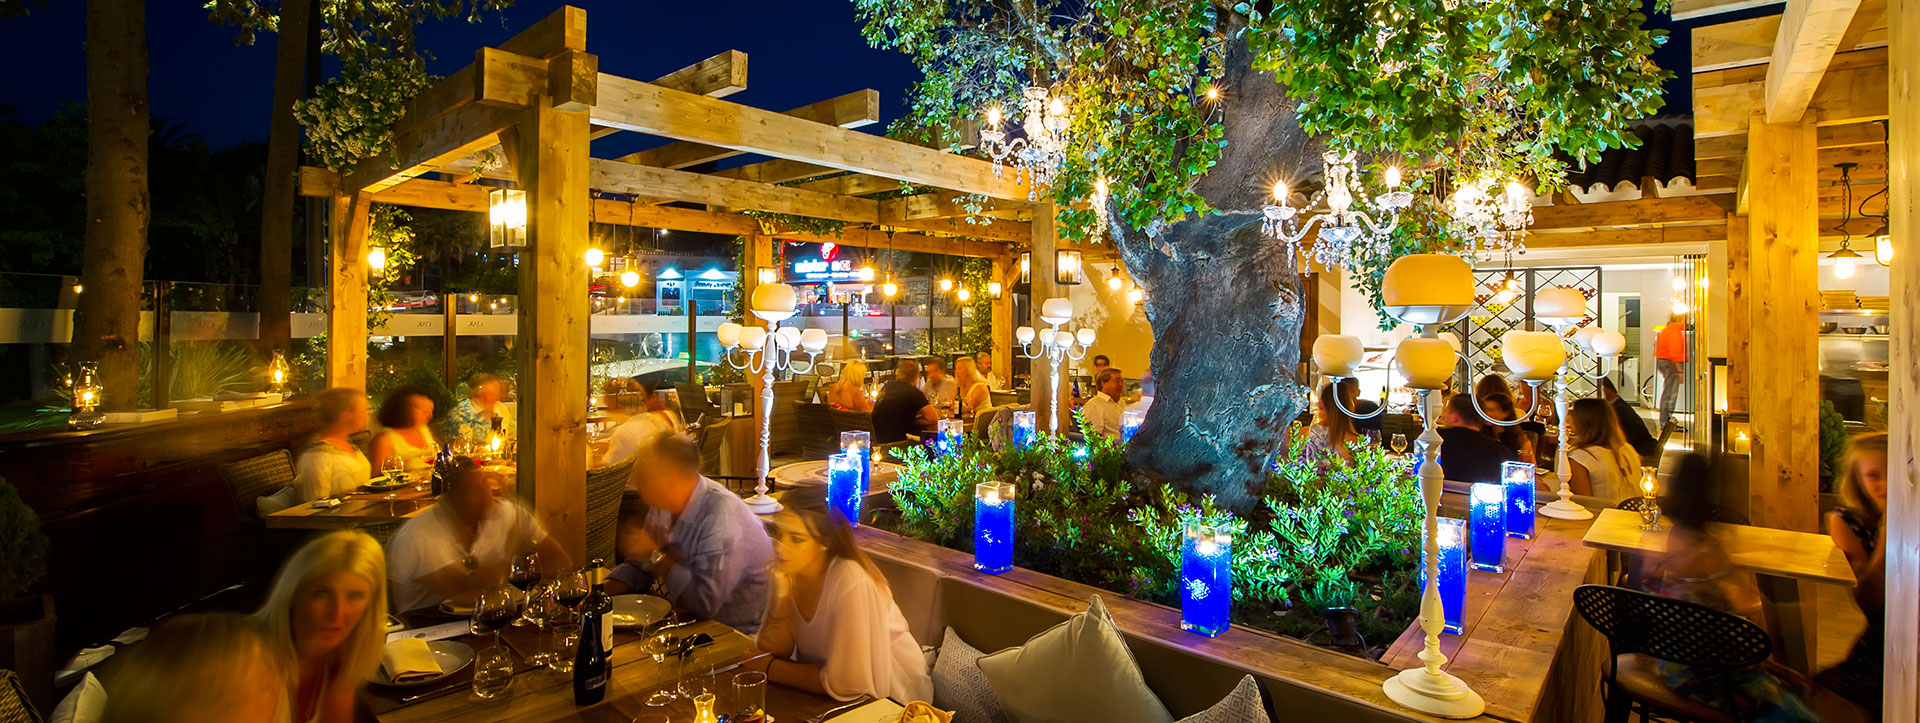 OAK Garden and Grill Meat, Steak and Fish Restaurant Puerto Banus